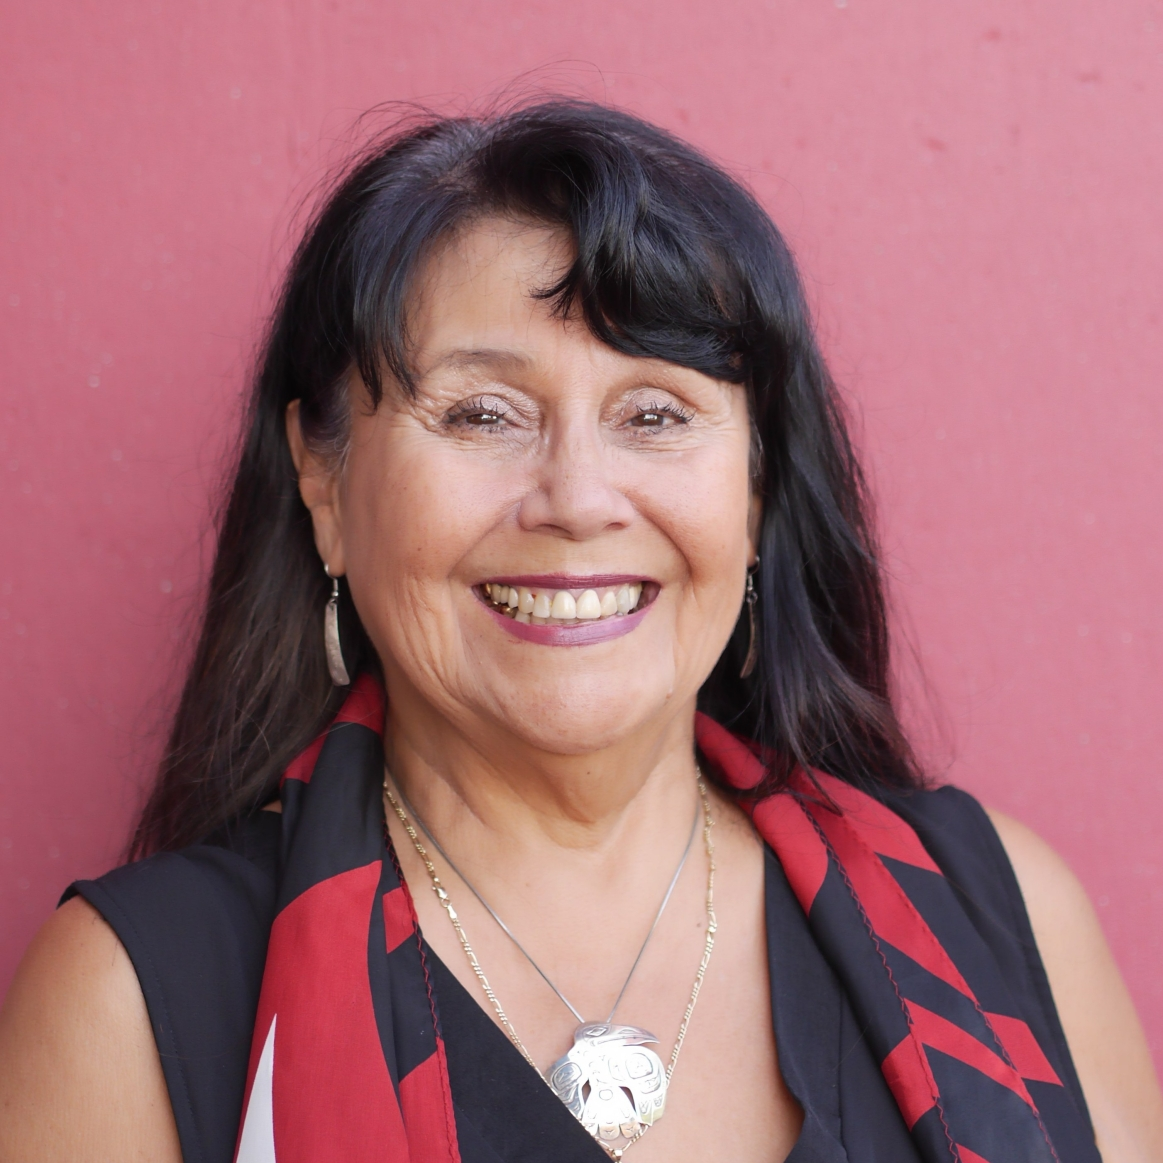 Darlene Kelly, Elder, PAFNW Secretary